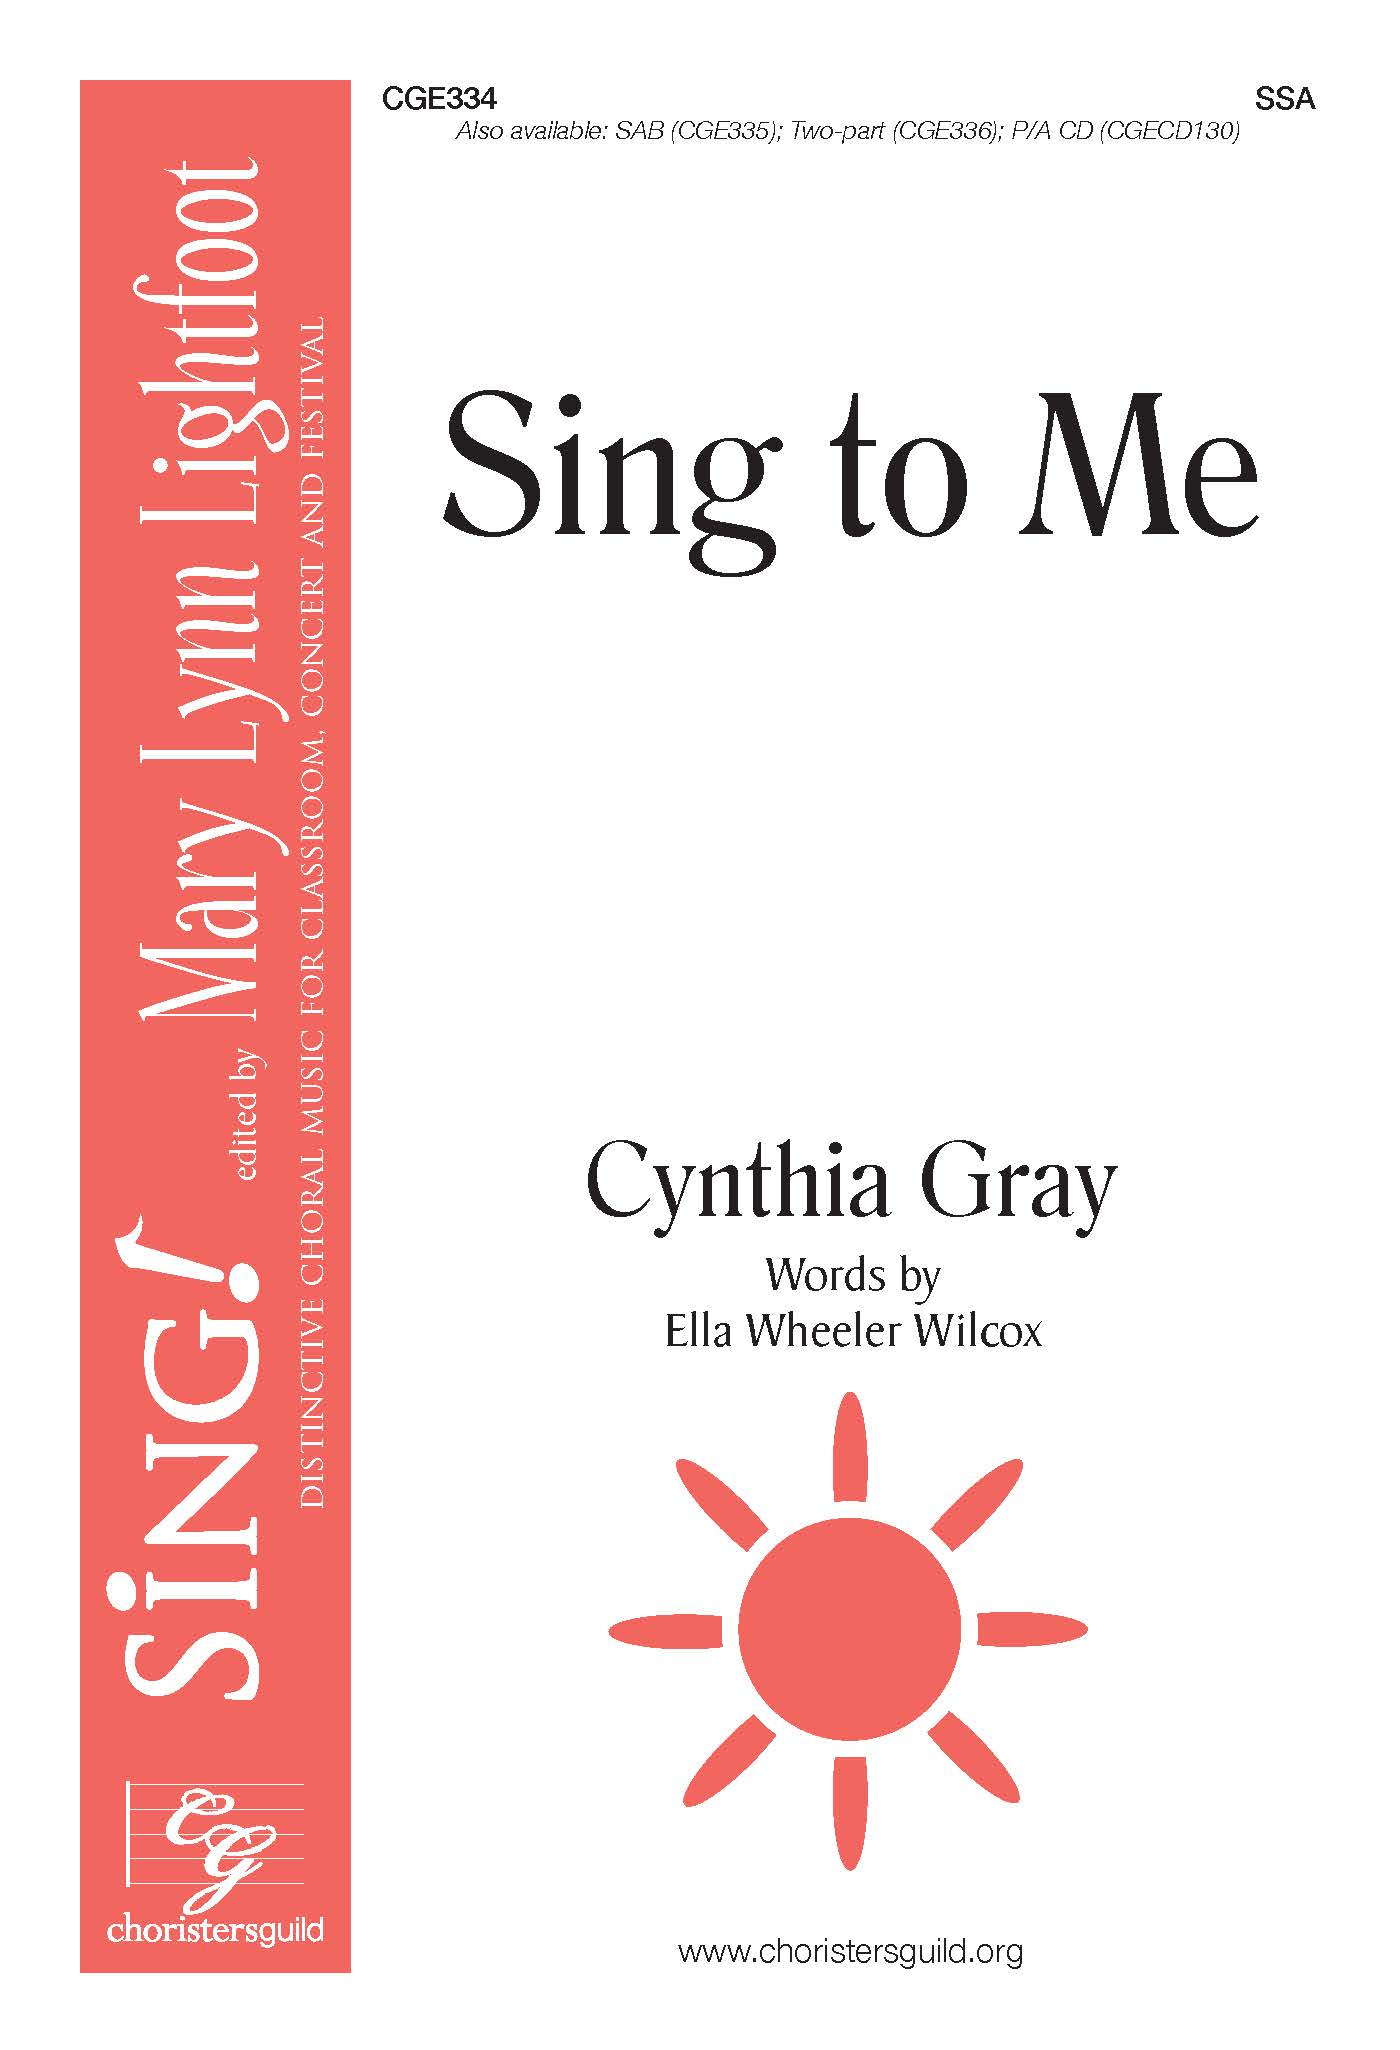 Sing to Me - SSA